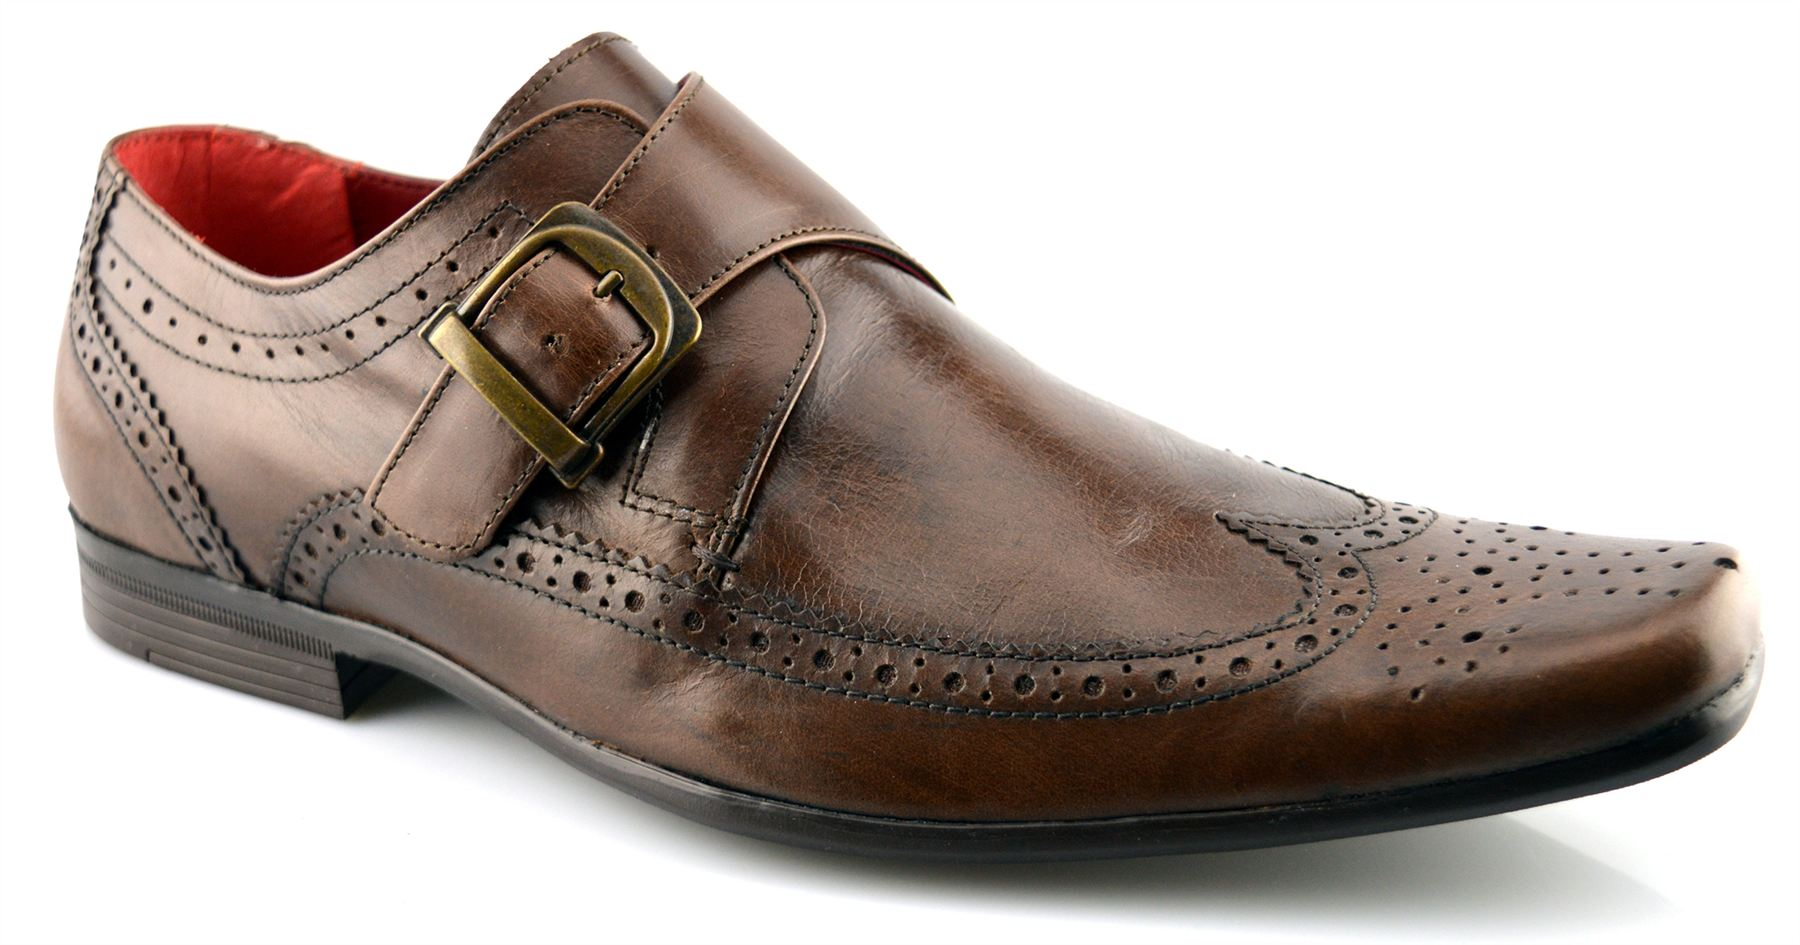 Van Heusen Double Monk Strap Shoes